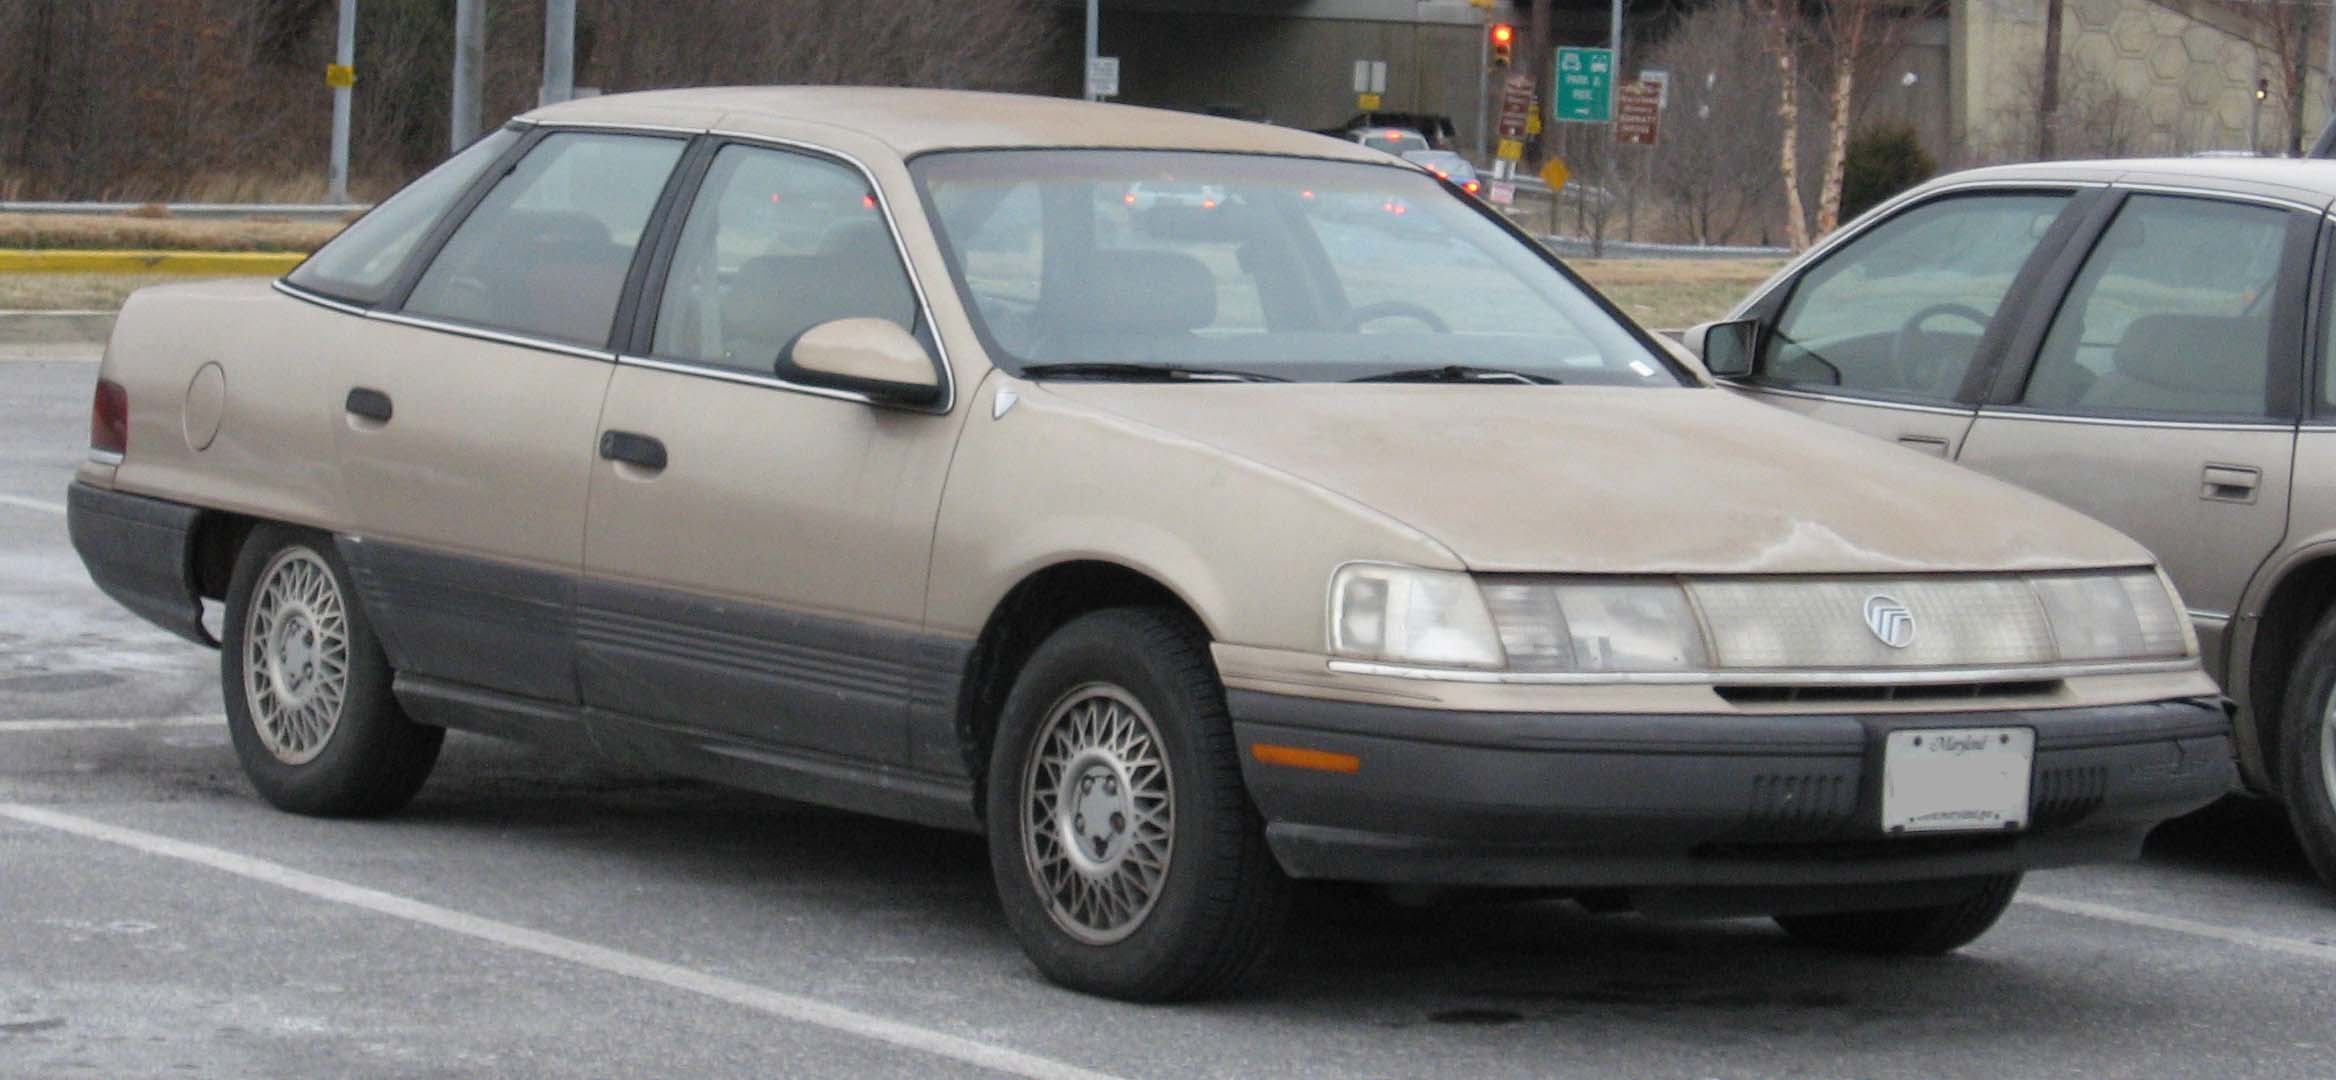 mercury sable seriess #11